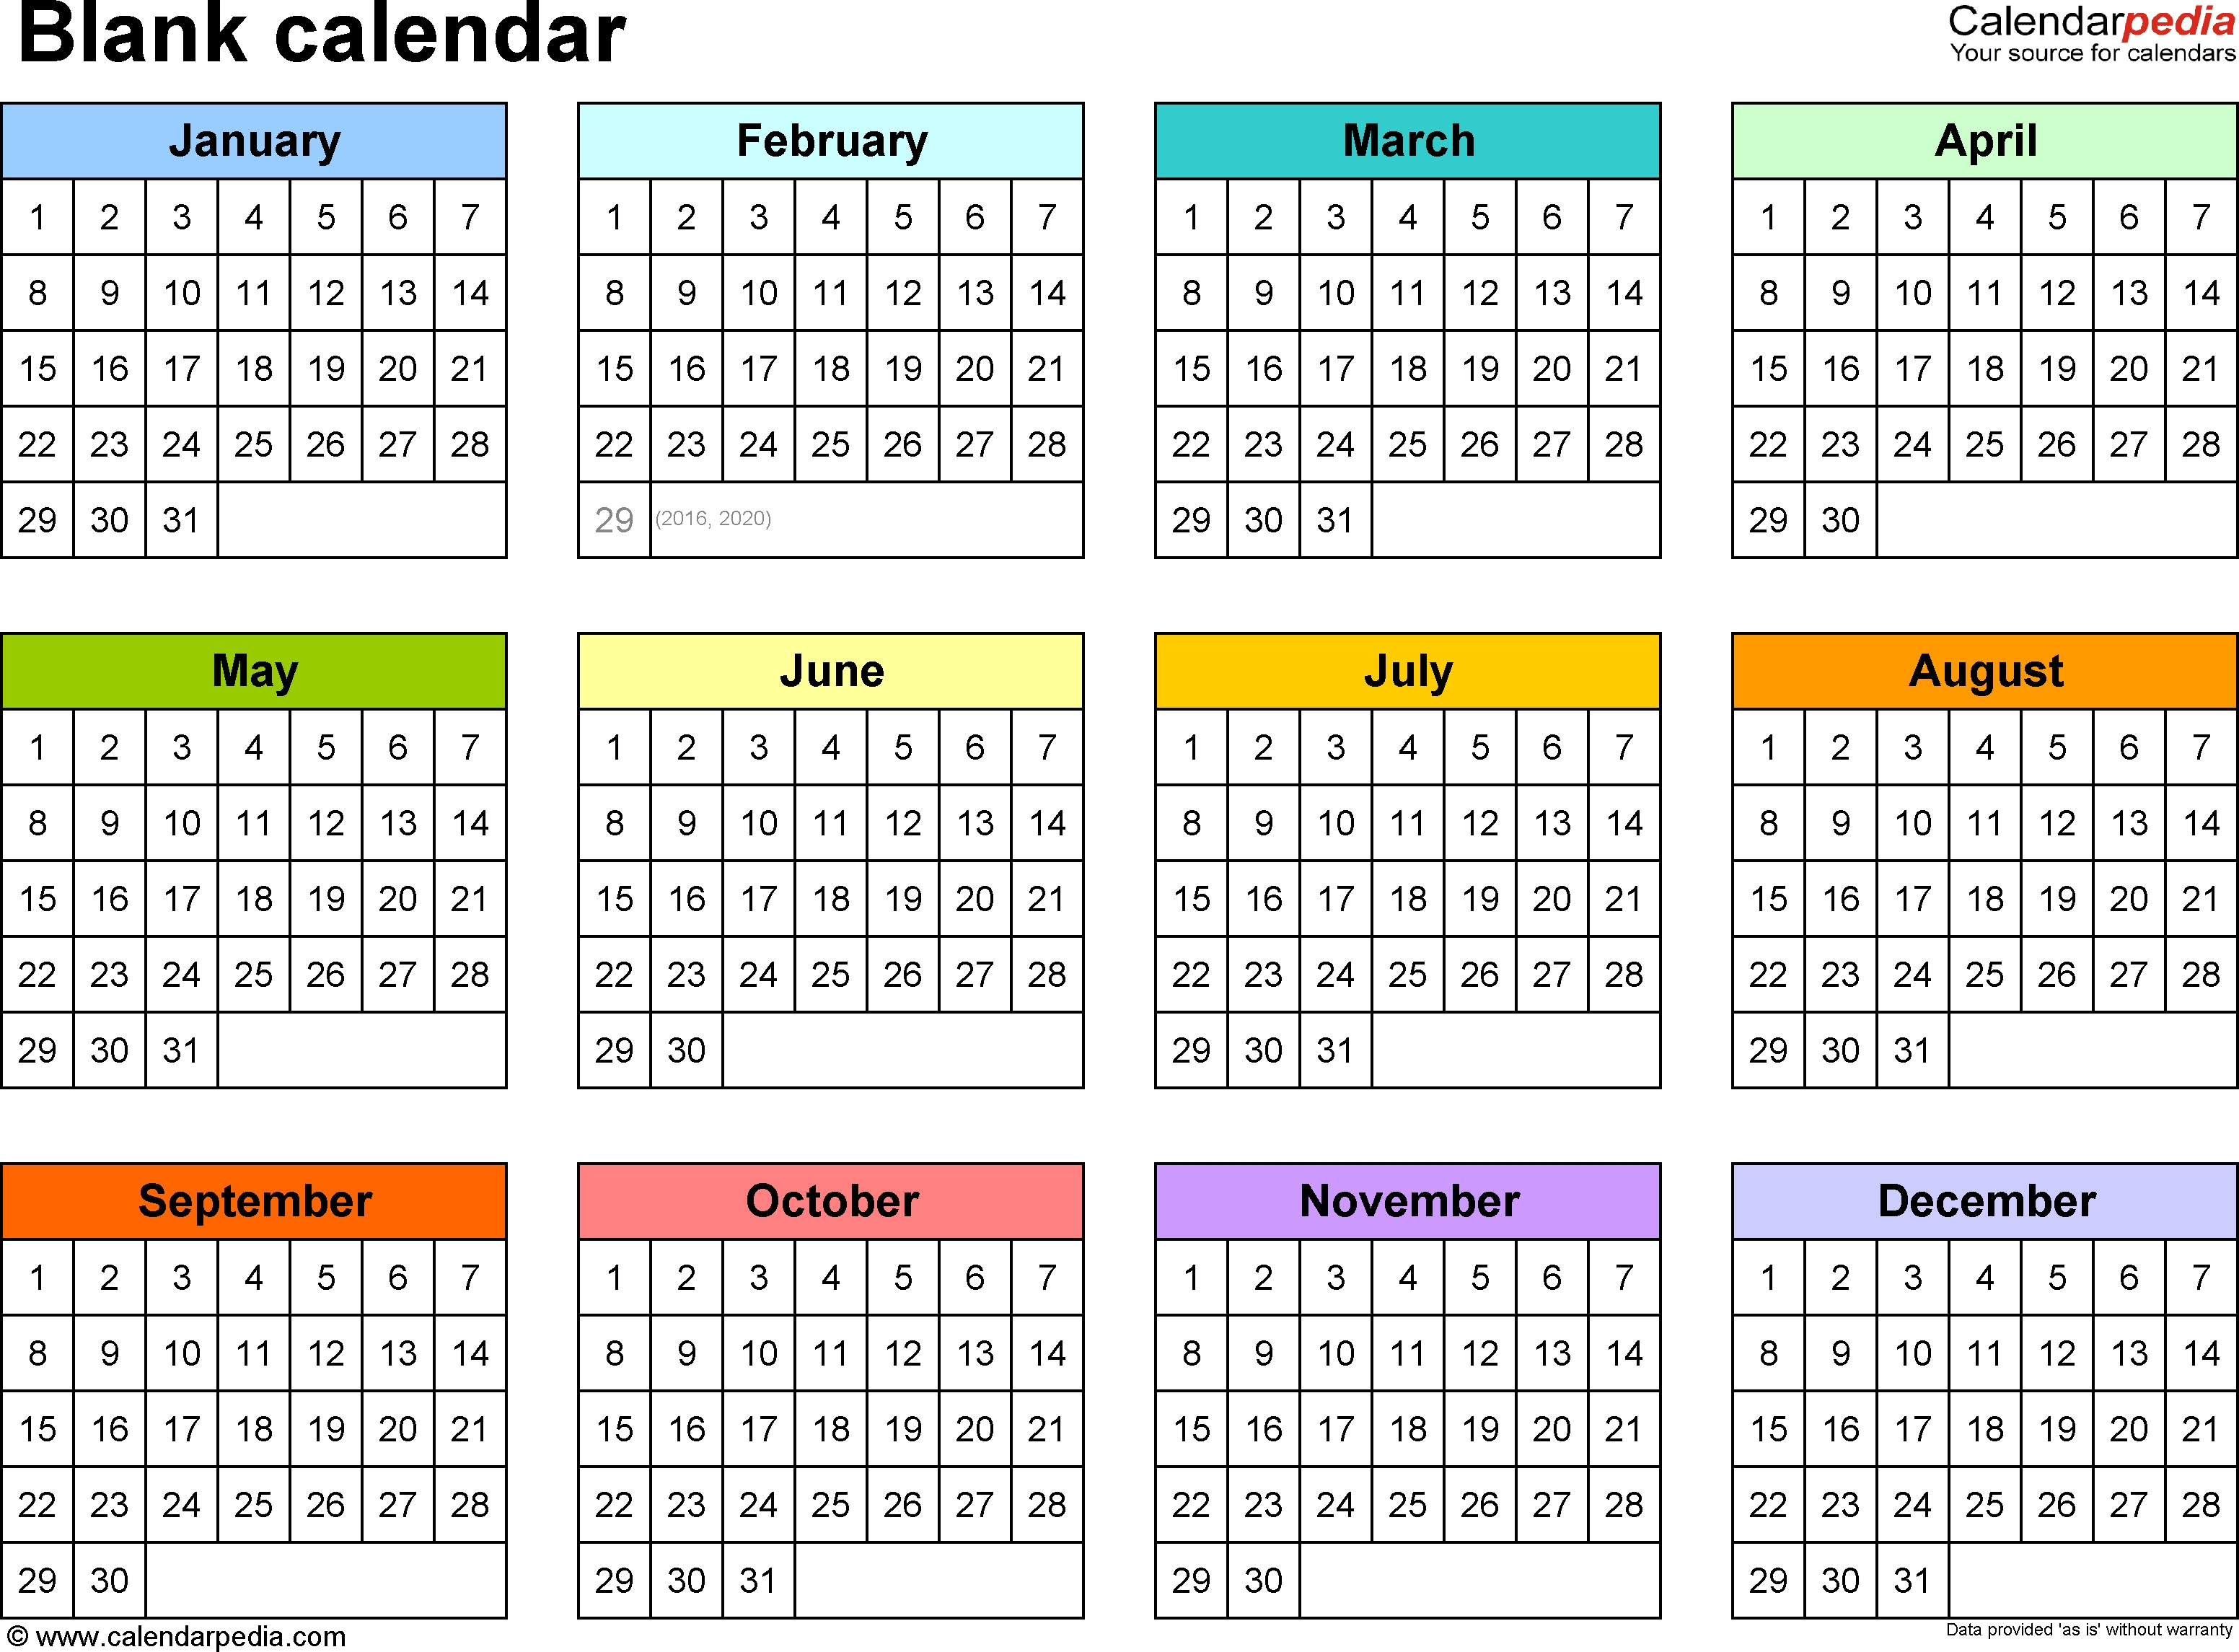 Blank Calendar - 9 Free Printable Microsoft Word Templates throughout Free Printable 12 Month Blank Calendar